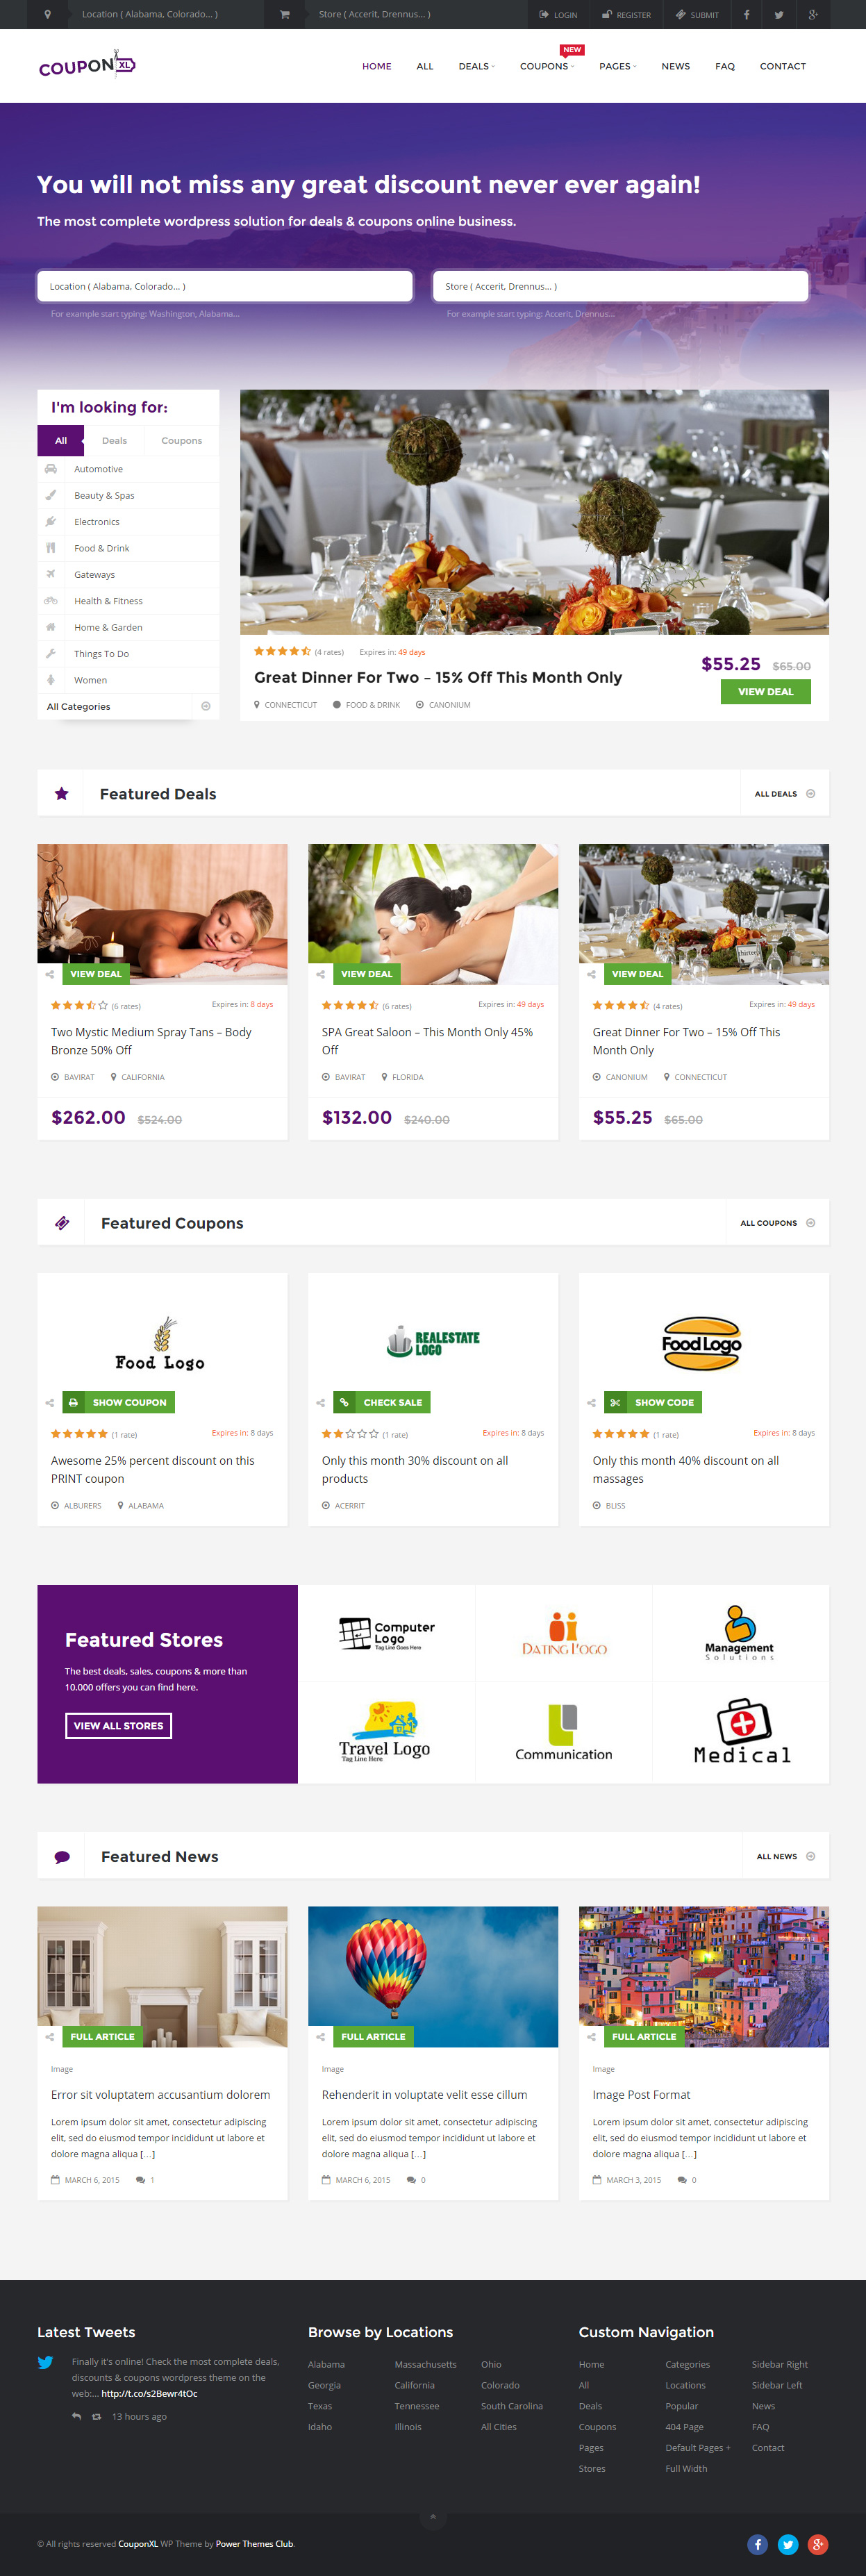 CouponXL is Premium full Responsive WordPress Coupons Theme. Retina Ready. Bootstrap Framework. MailChimp. Google Map. PayPal. Test free demo at: http://www.responsivemiracle.com/cms/couponxl-premium-responsive-coupons-deals-discounts-wordpress-theme/